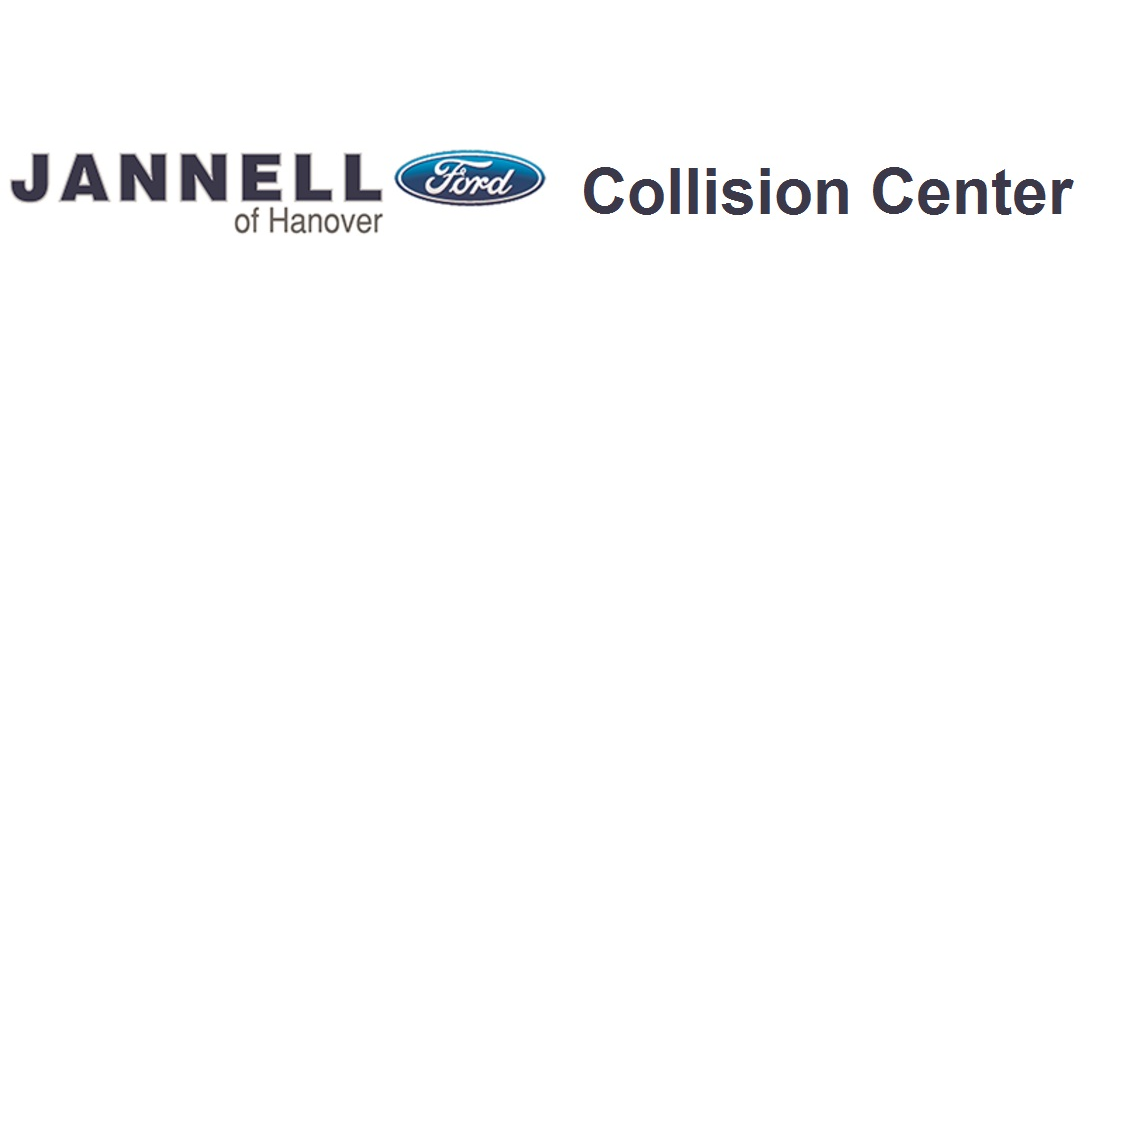 Jannell Collision Center - South Weymouth, MA - Auto Body Repair & Painting